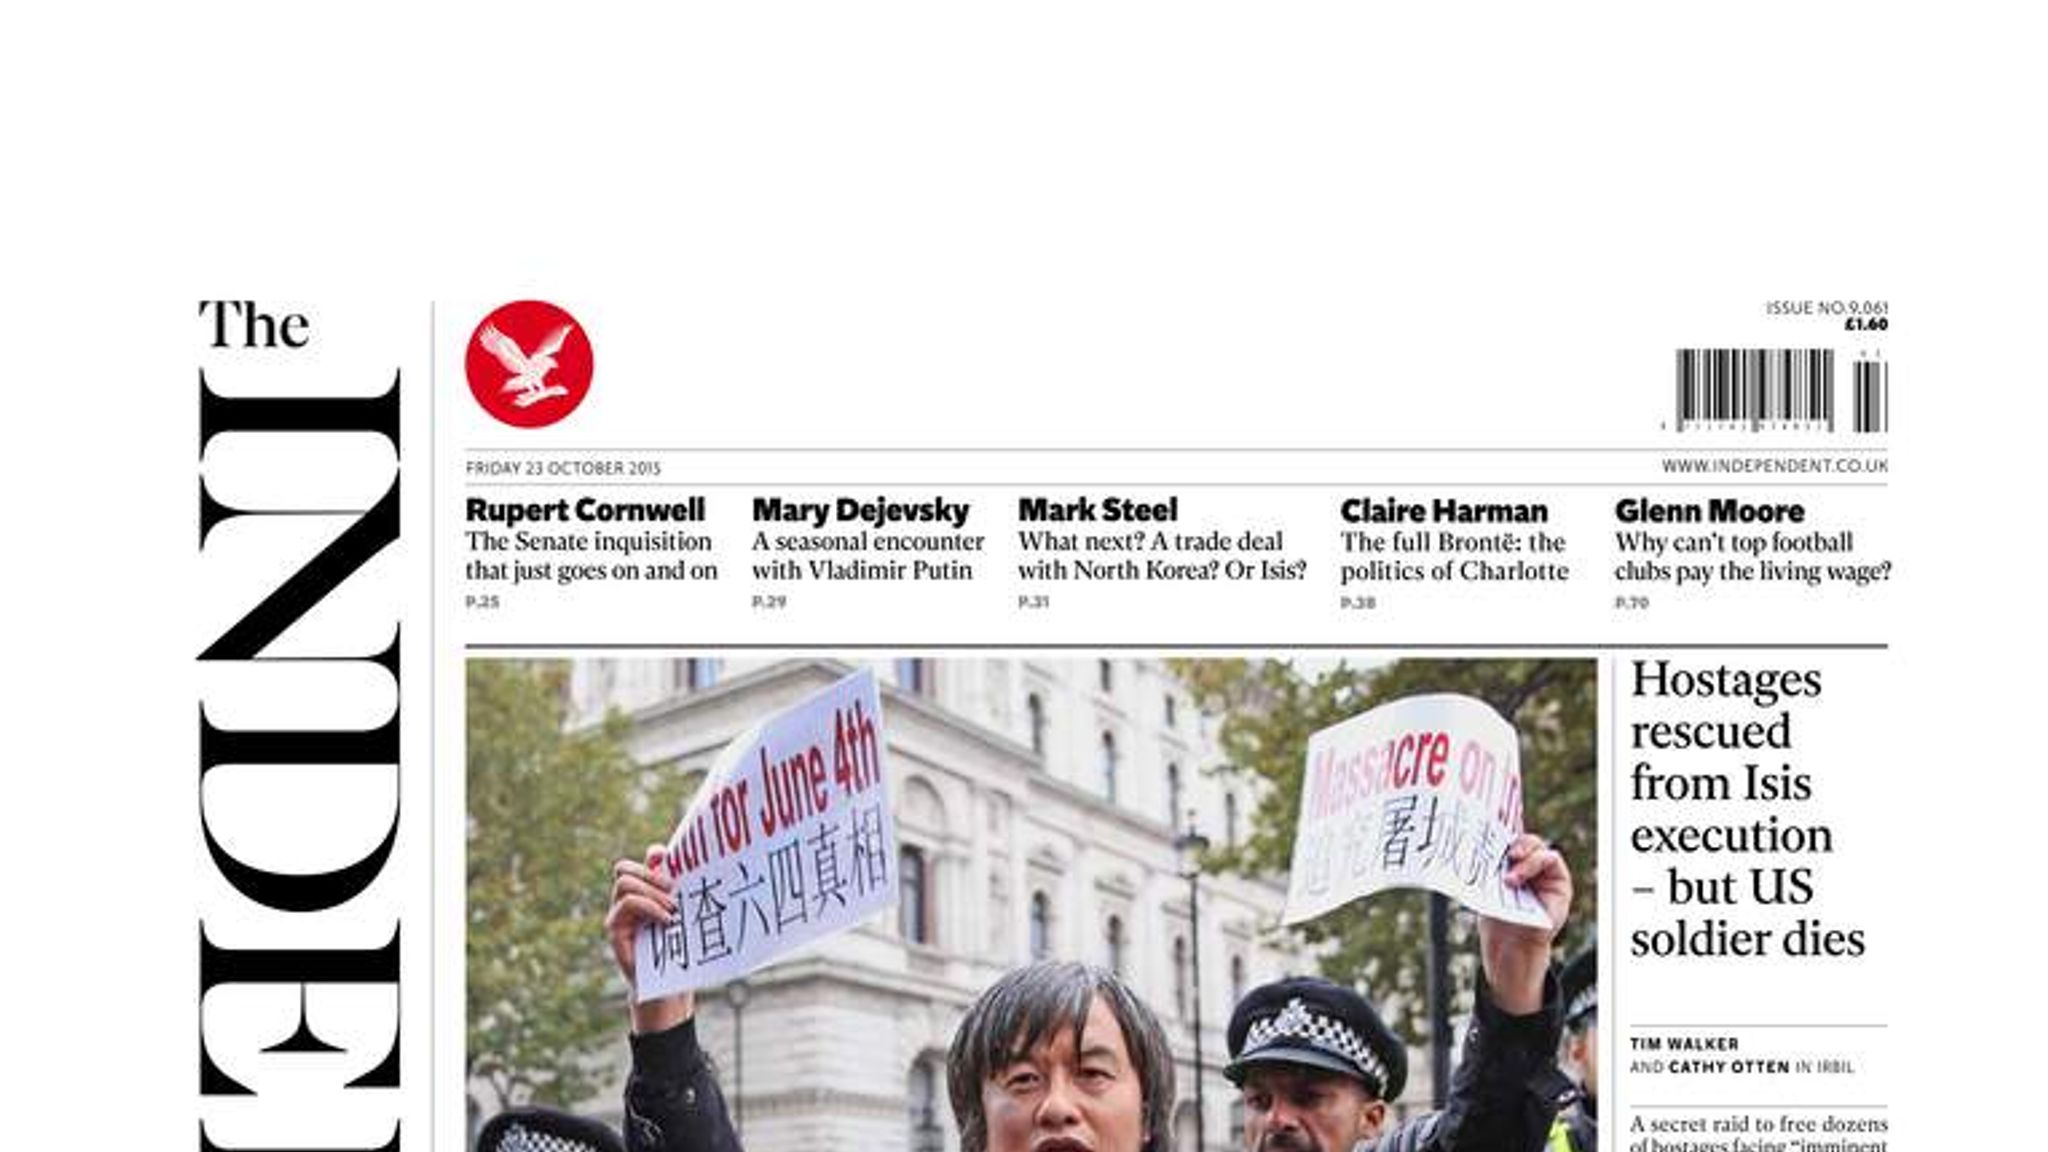 The Independent (07 October 2015)